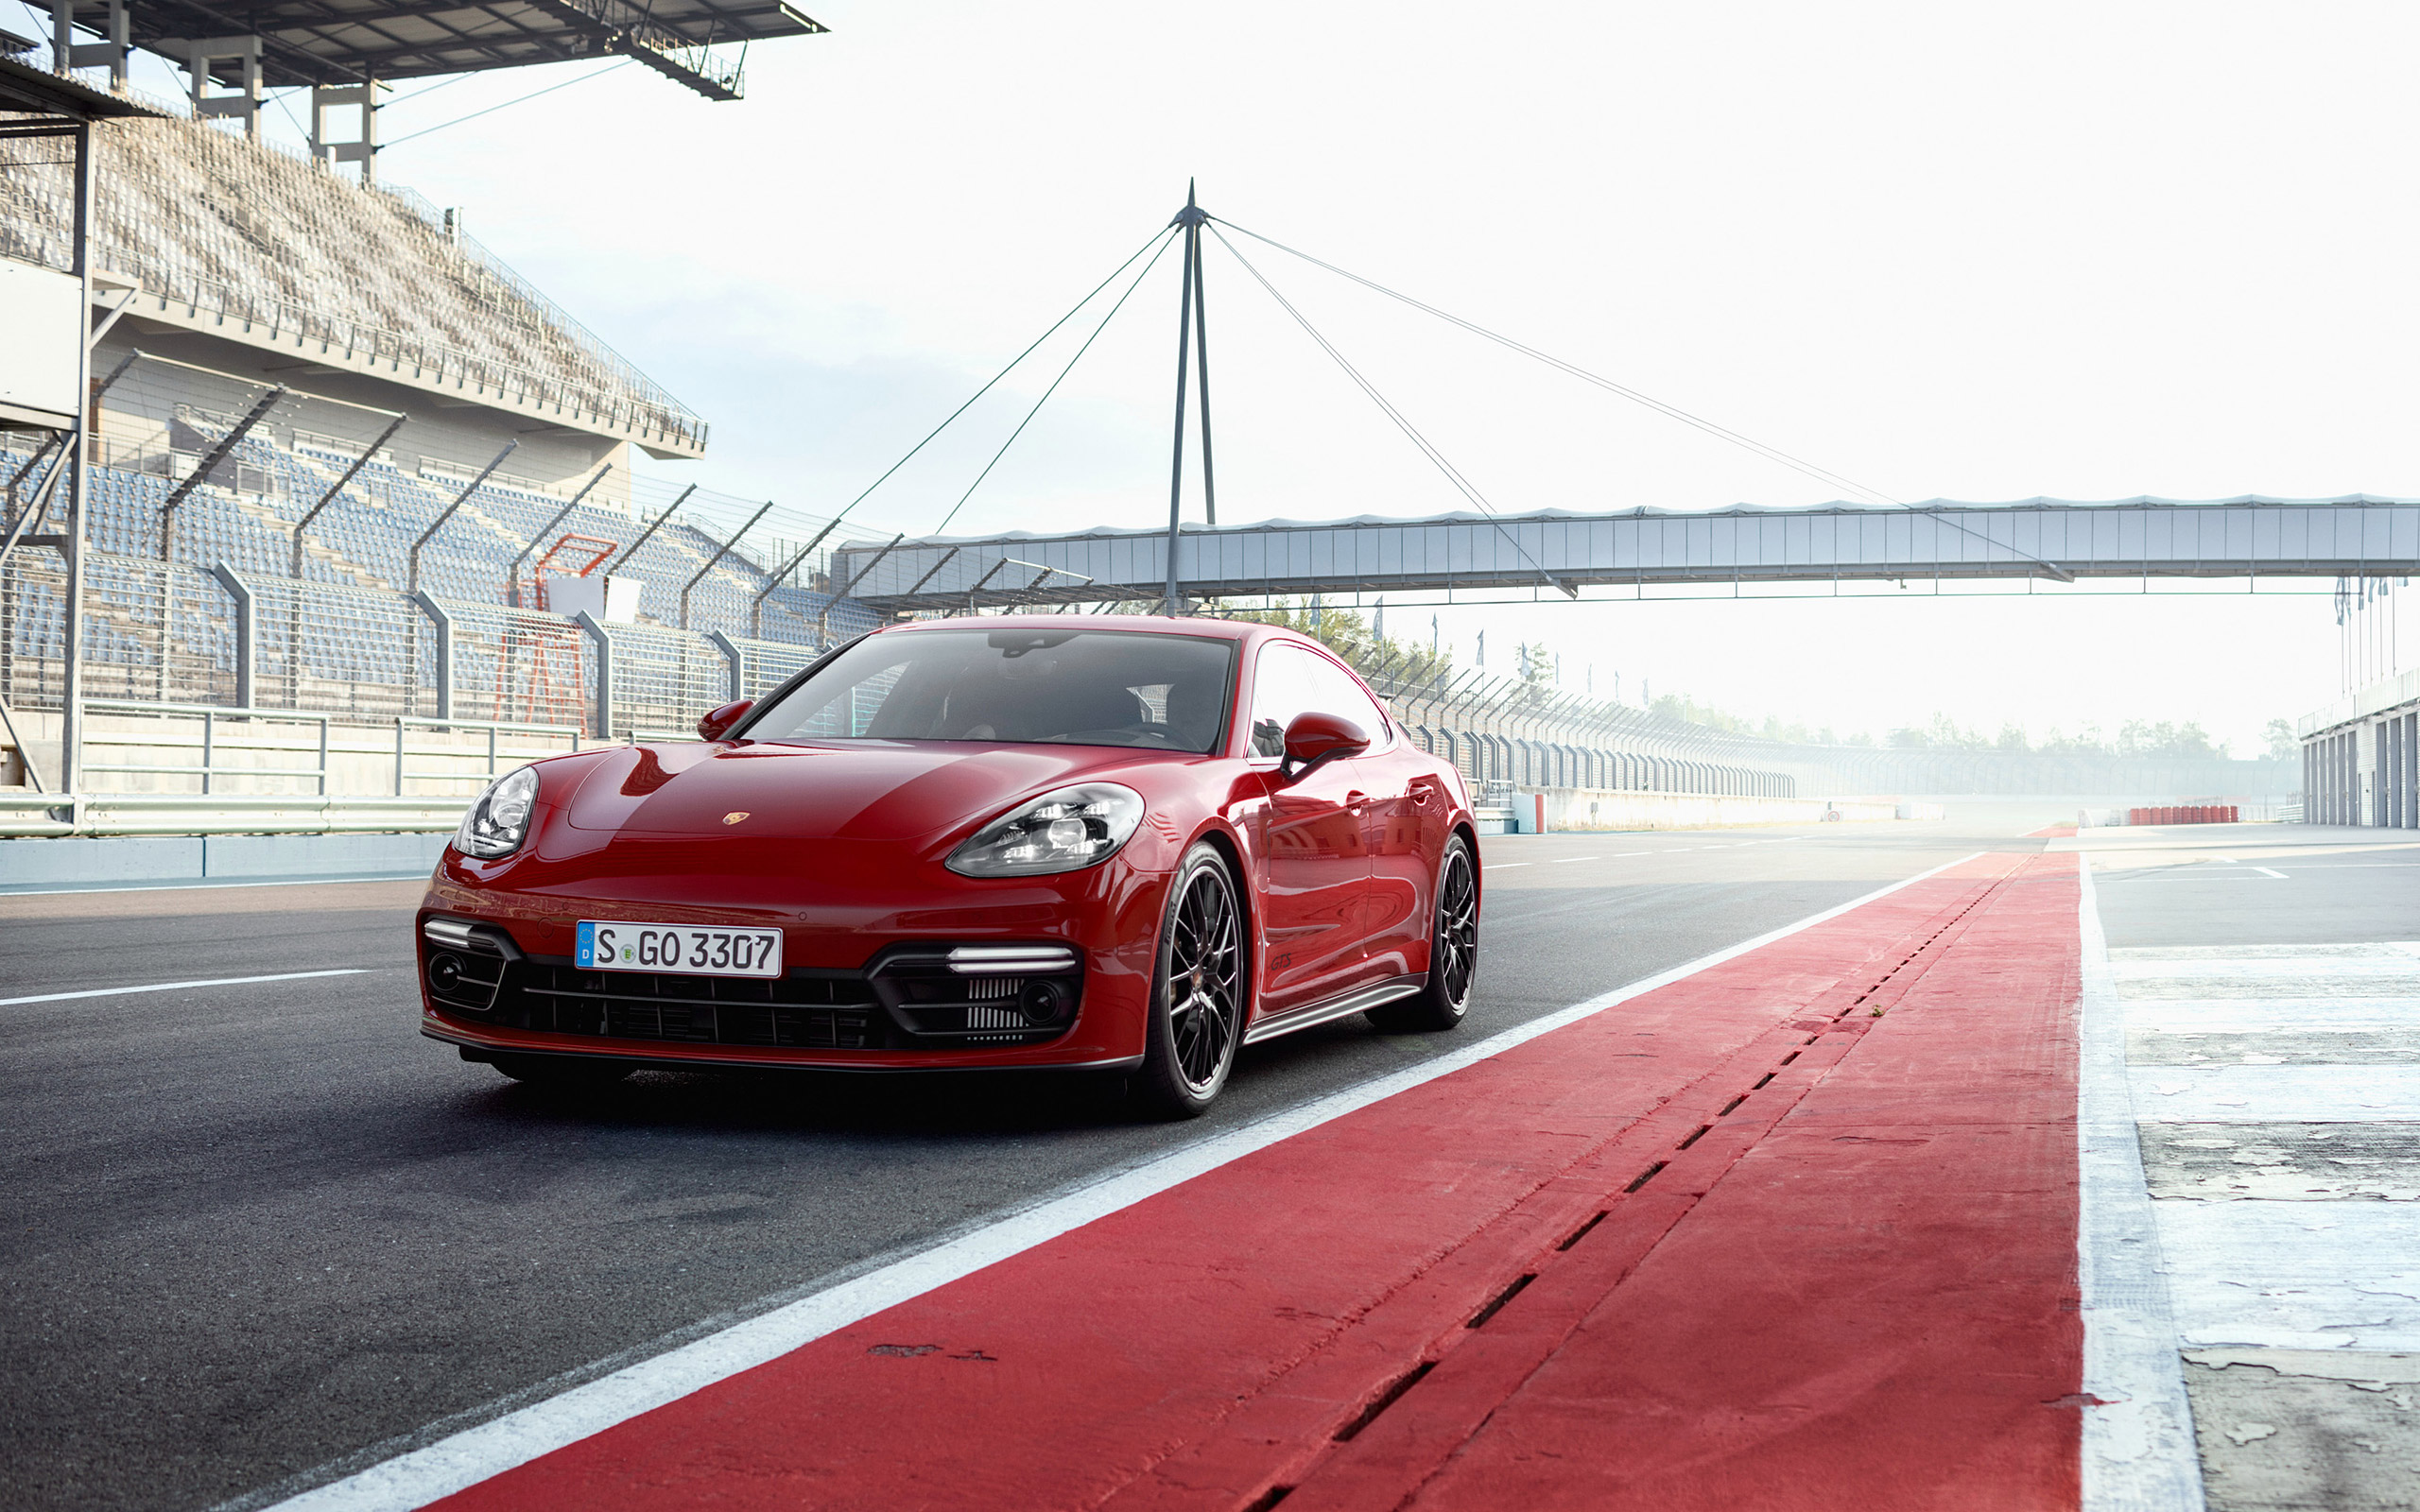 2019 Porsche Panamera Gts Wallpapers 113 Hd Images Newcarcars